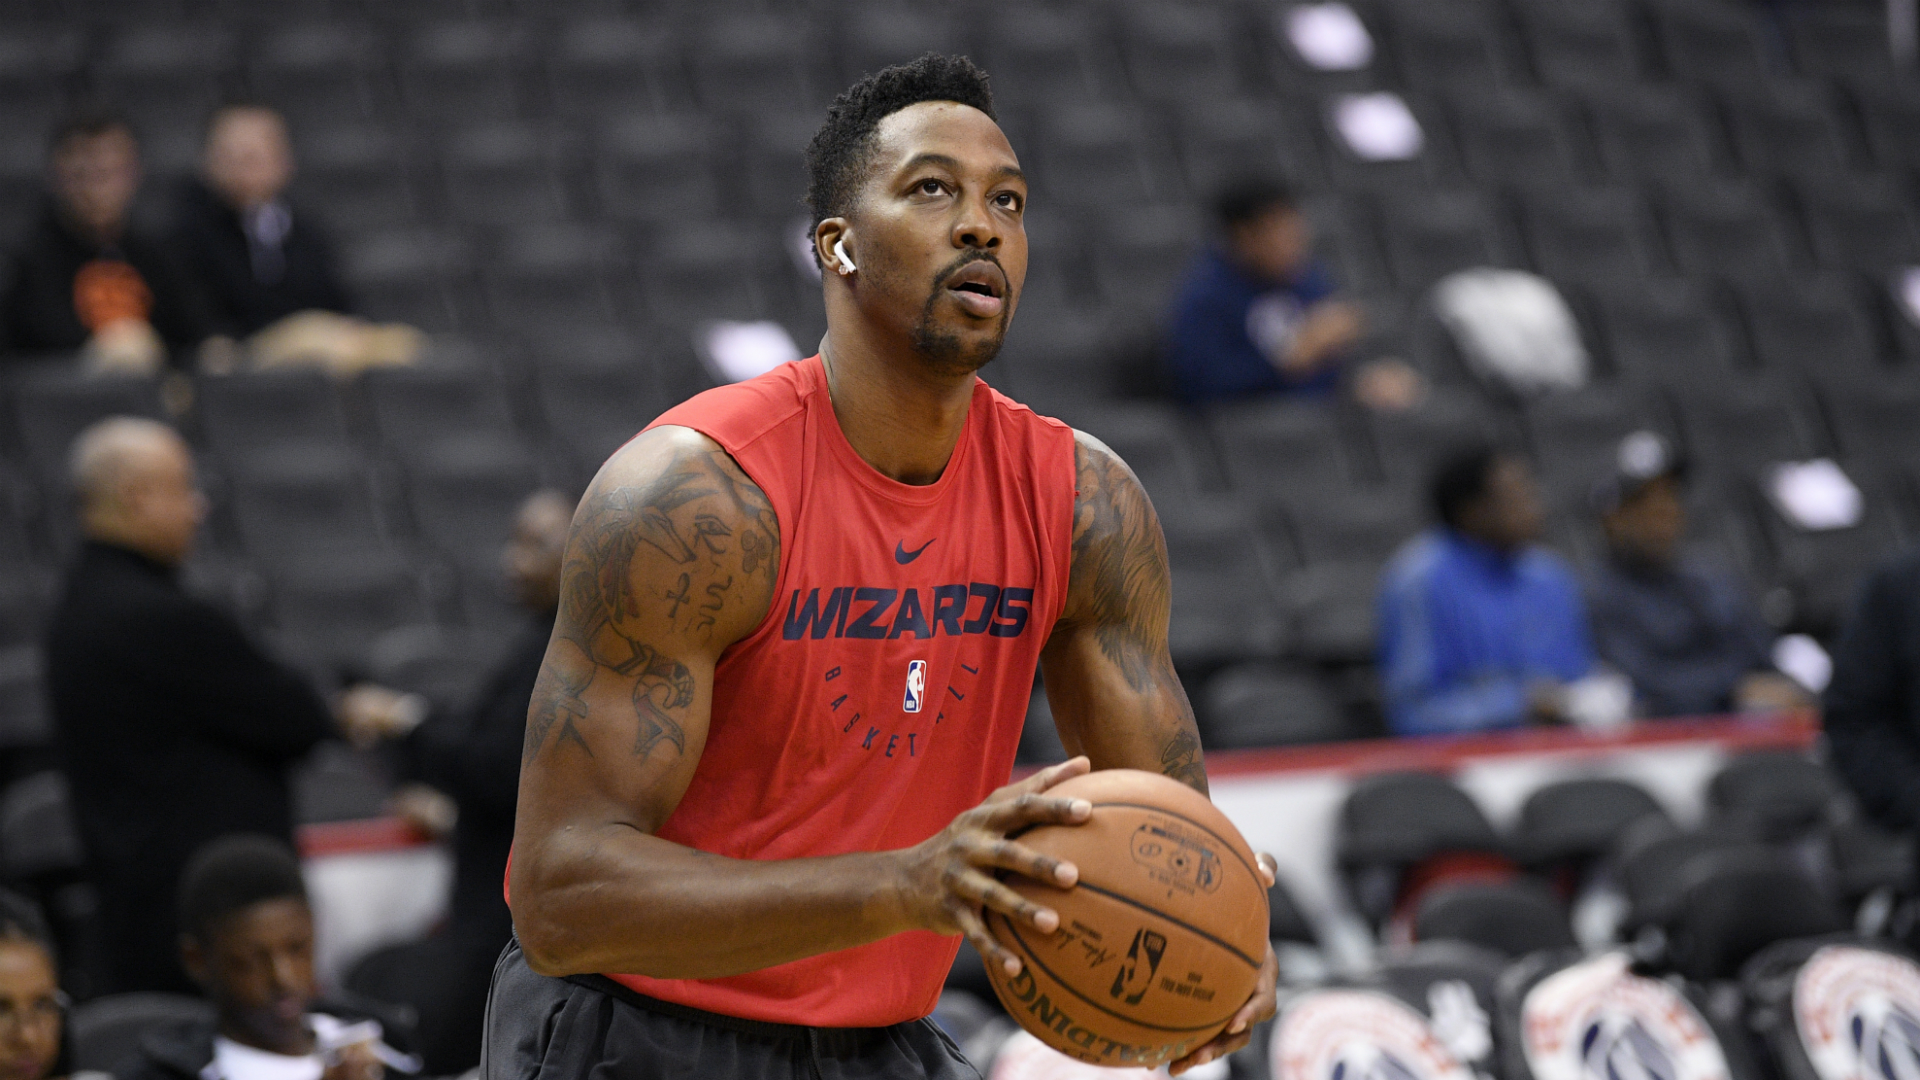 ff646cada7c Still missing Dwight Howard, Wizards continue to be among NBA's .